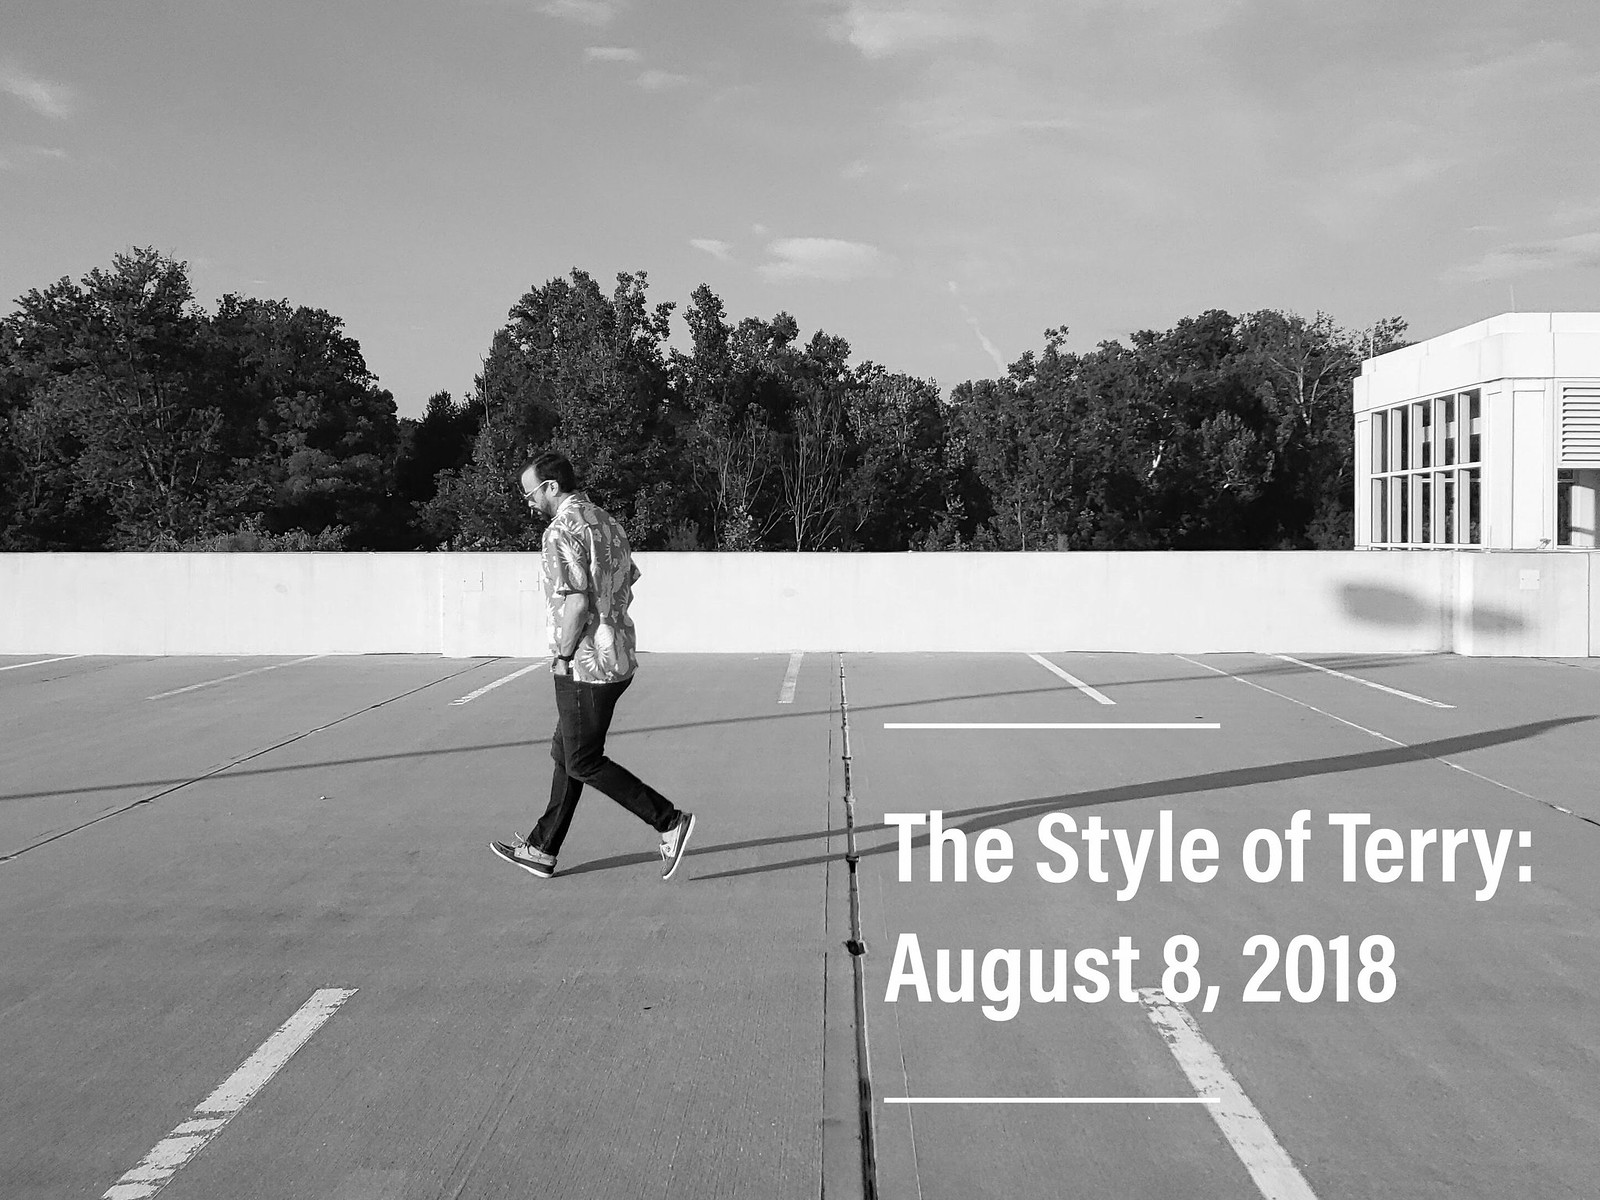 The Style of Terry: 8.8.18